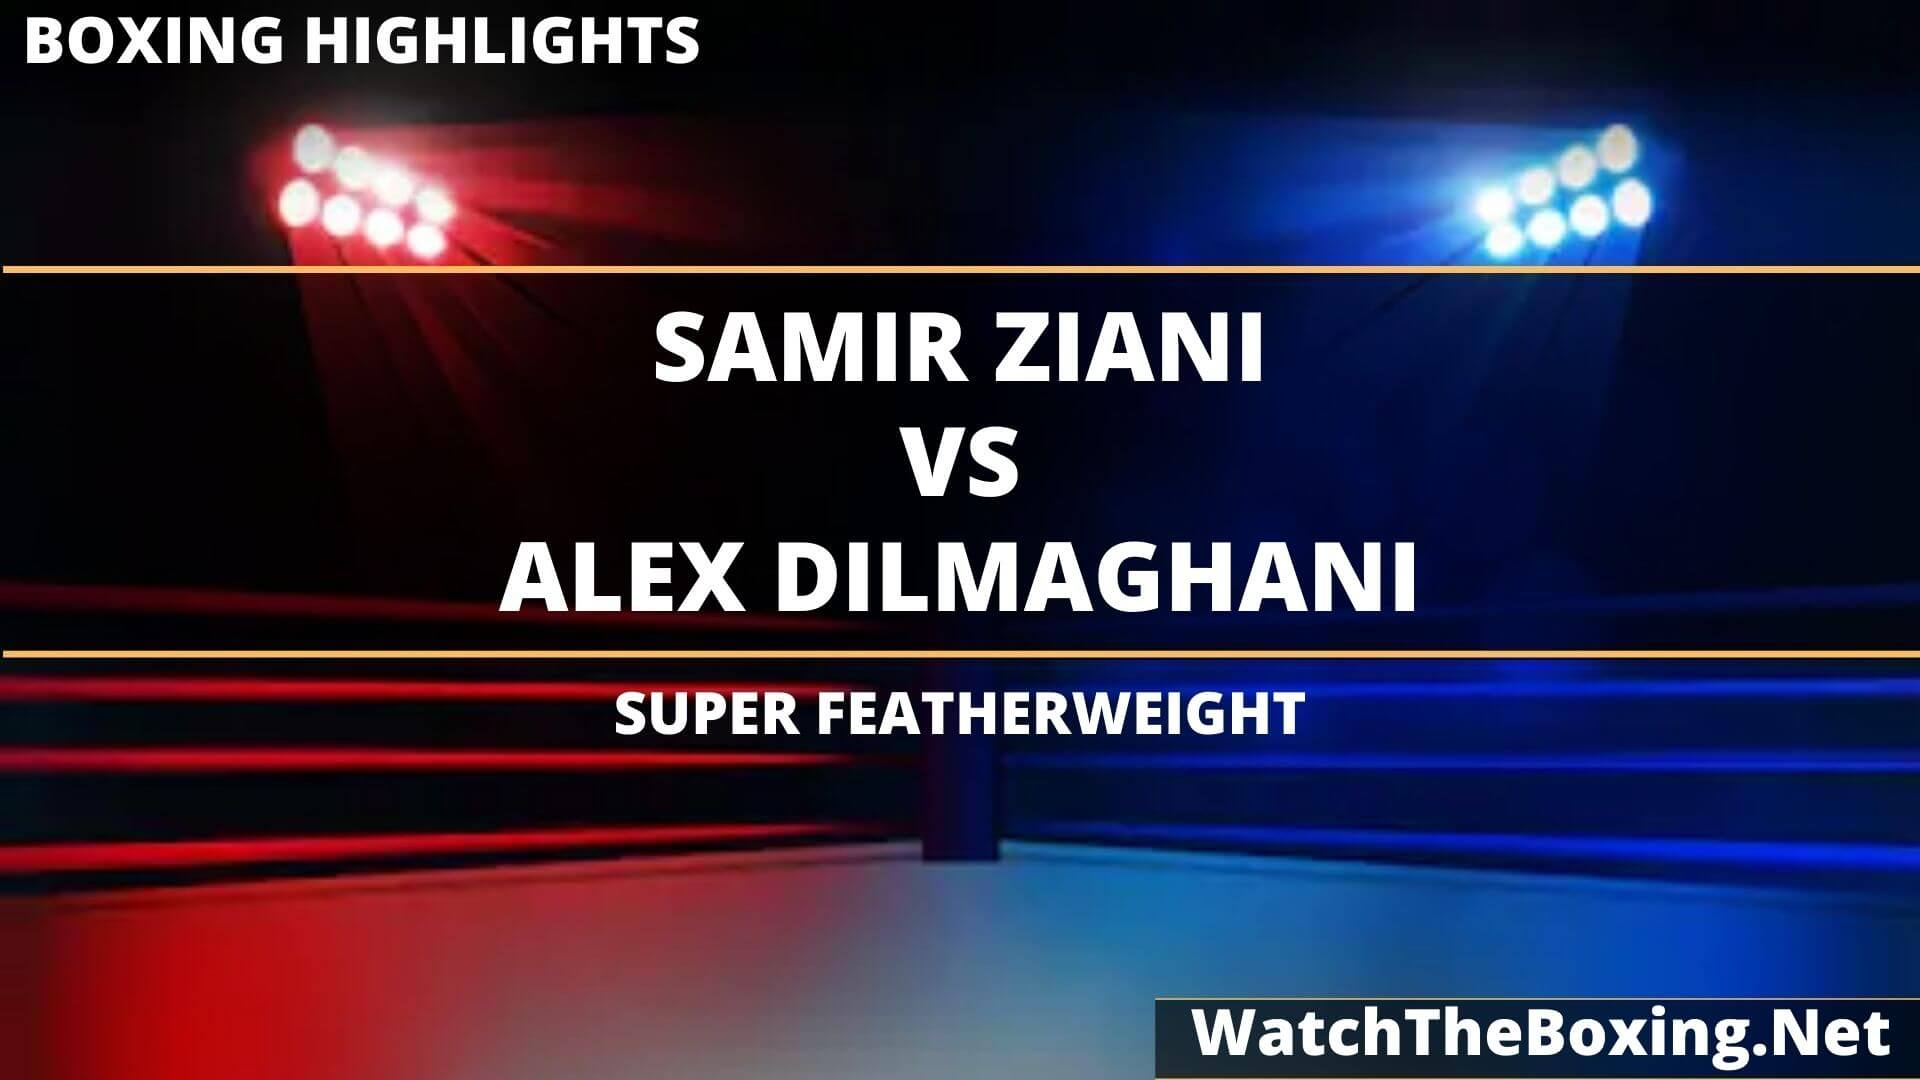 Samir Ziani Vs Alex Dilmaghani Highlights 2020 Super Featherweight